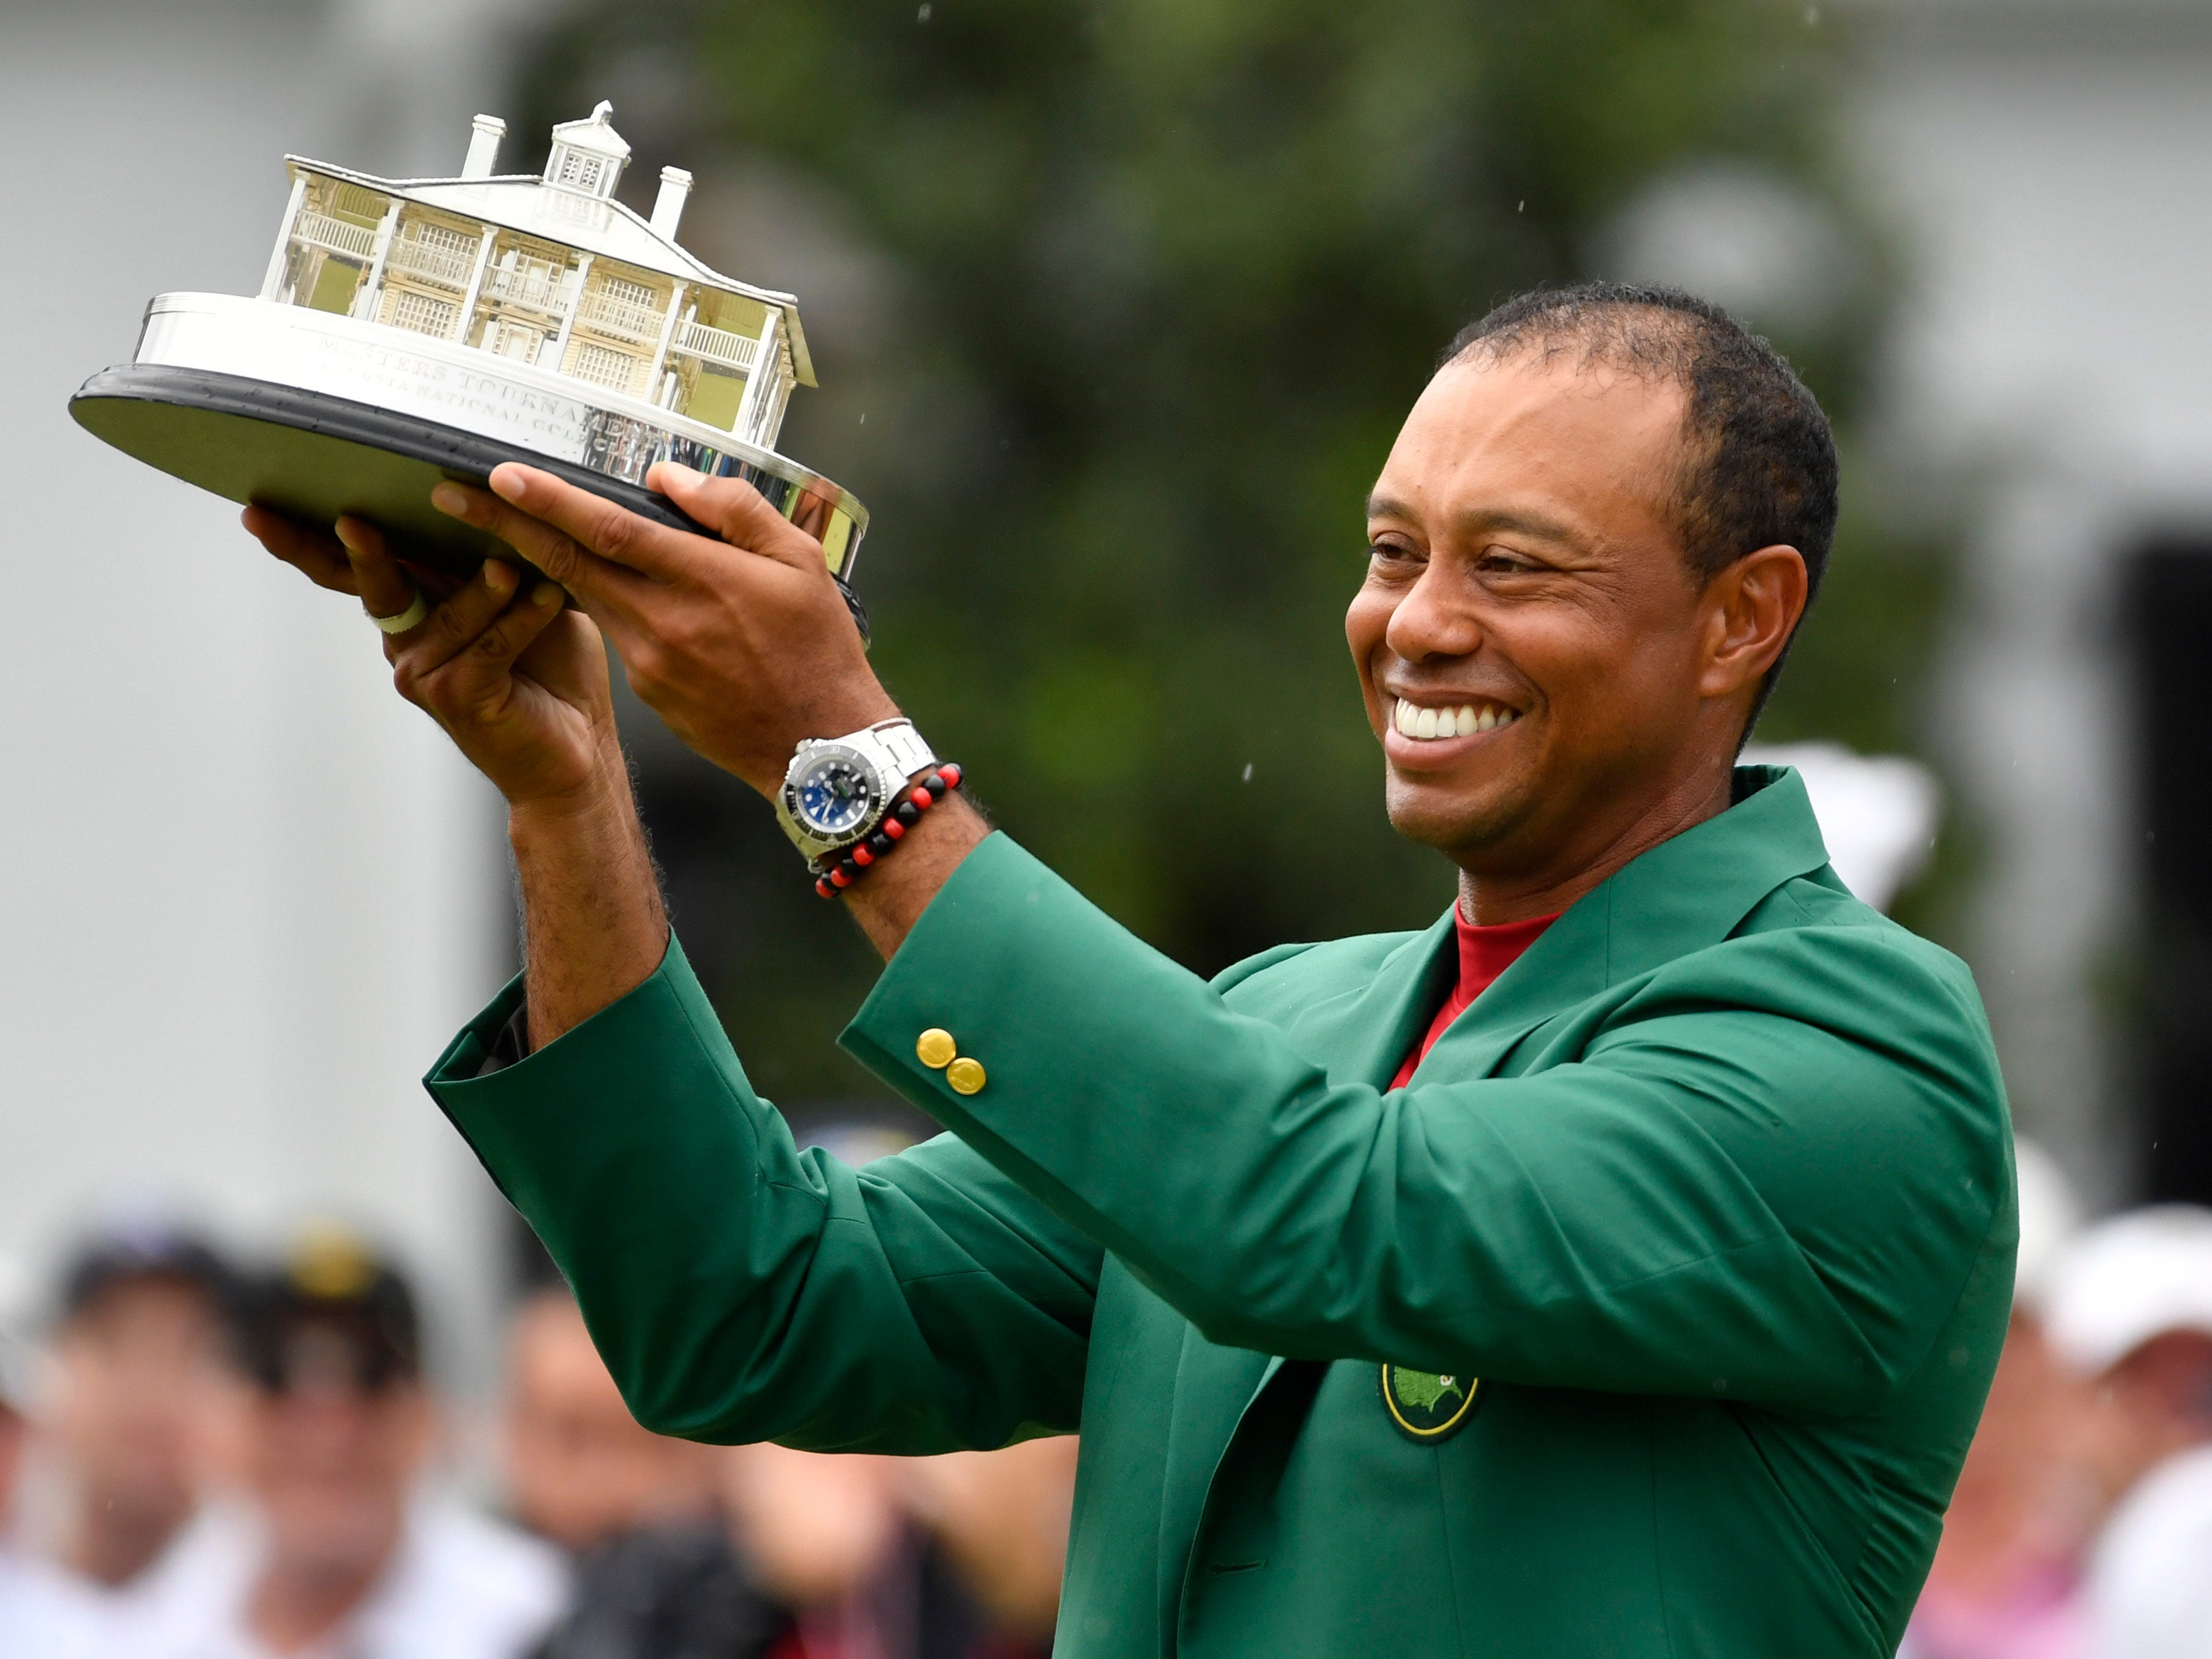 Apr 14, 2019; Augusta, GA, USA; Tiger Woods celebrates with the green jacket and trophy after winning The Masters golf tournament at Augusta National Golf Club. Mandatory Credit: Michael Madrid-USA TODAY Sports ORG XMIT: USATSI-389786 ORIG FILE ID:  20190414_jla_mm1_290.jpg